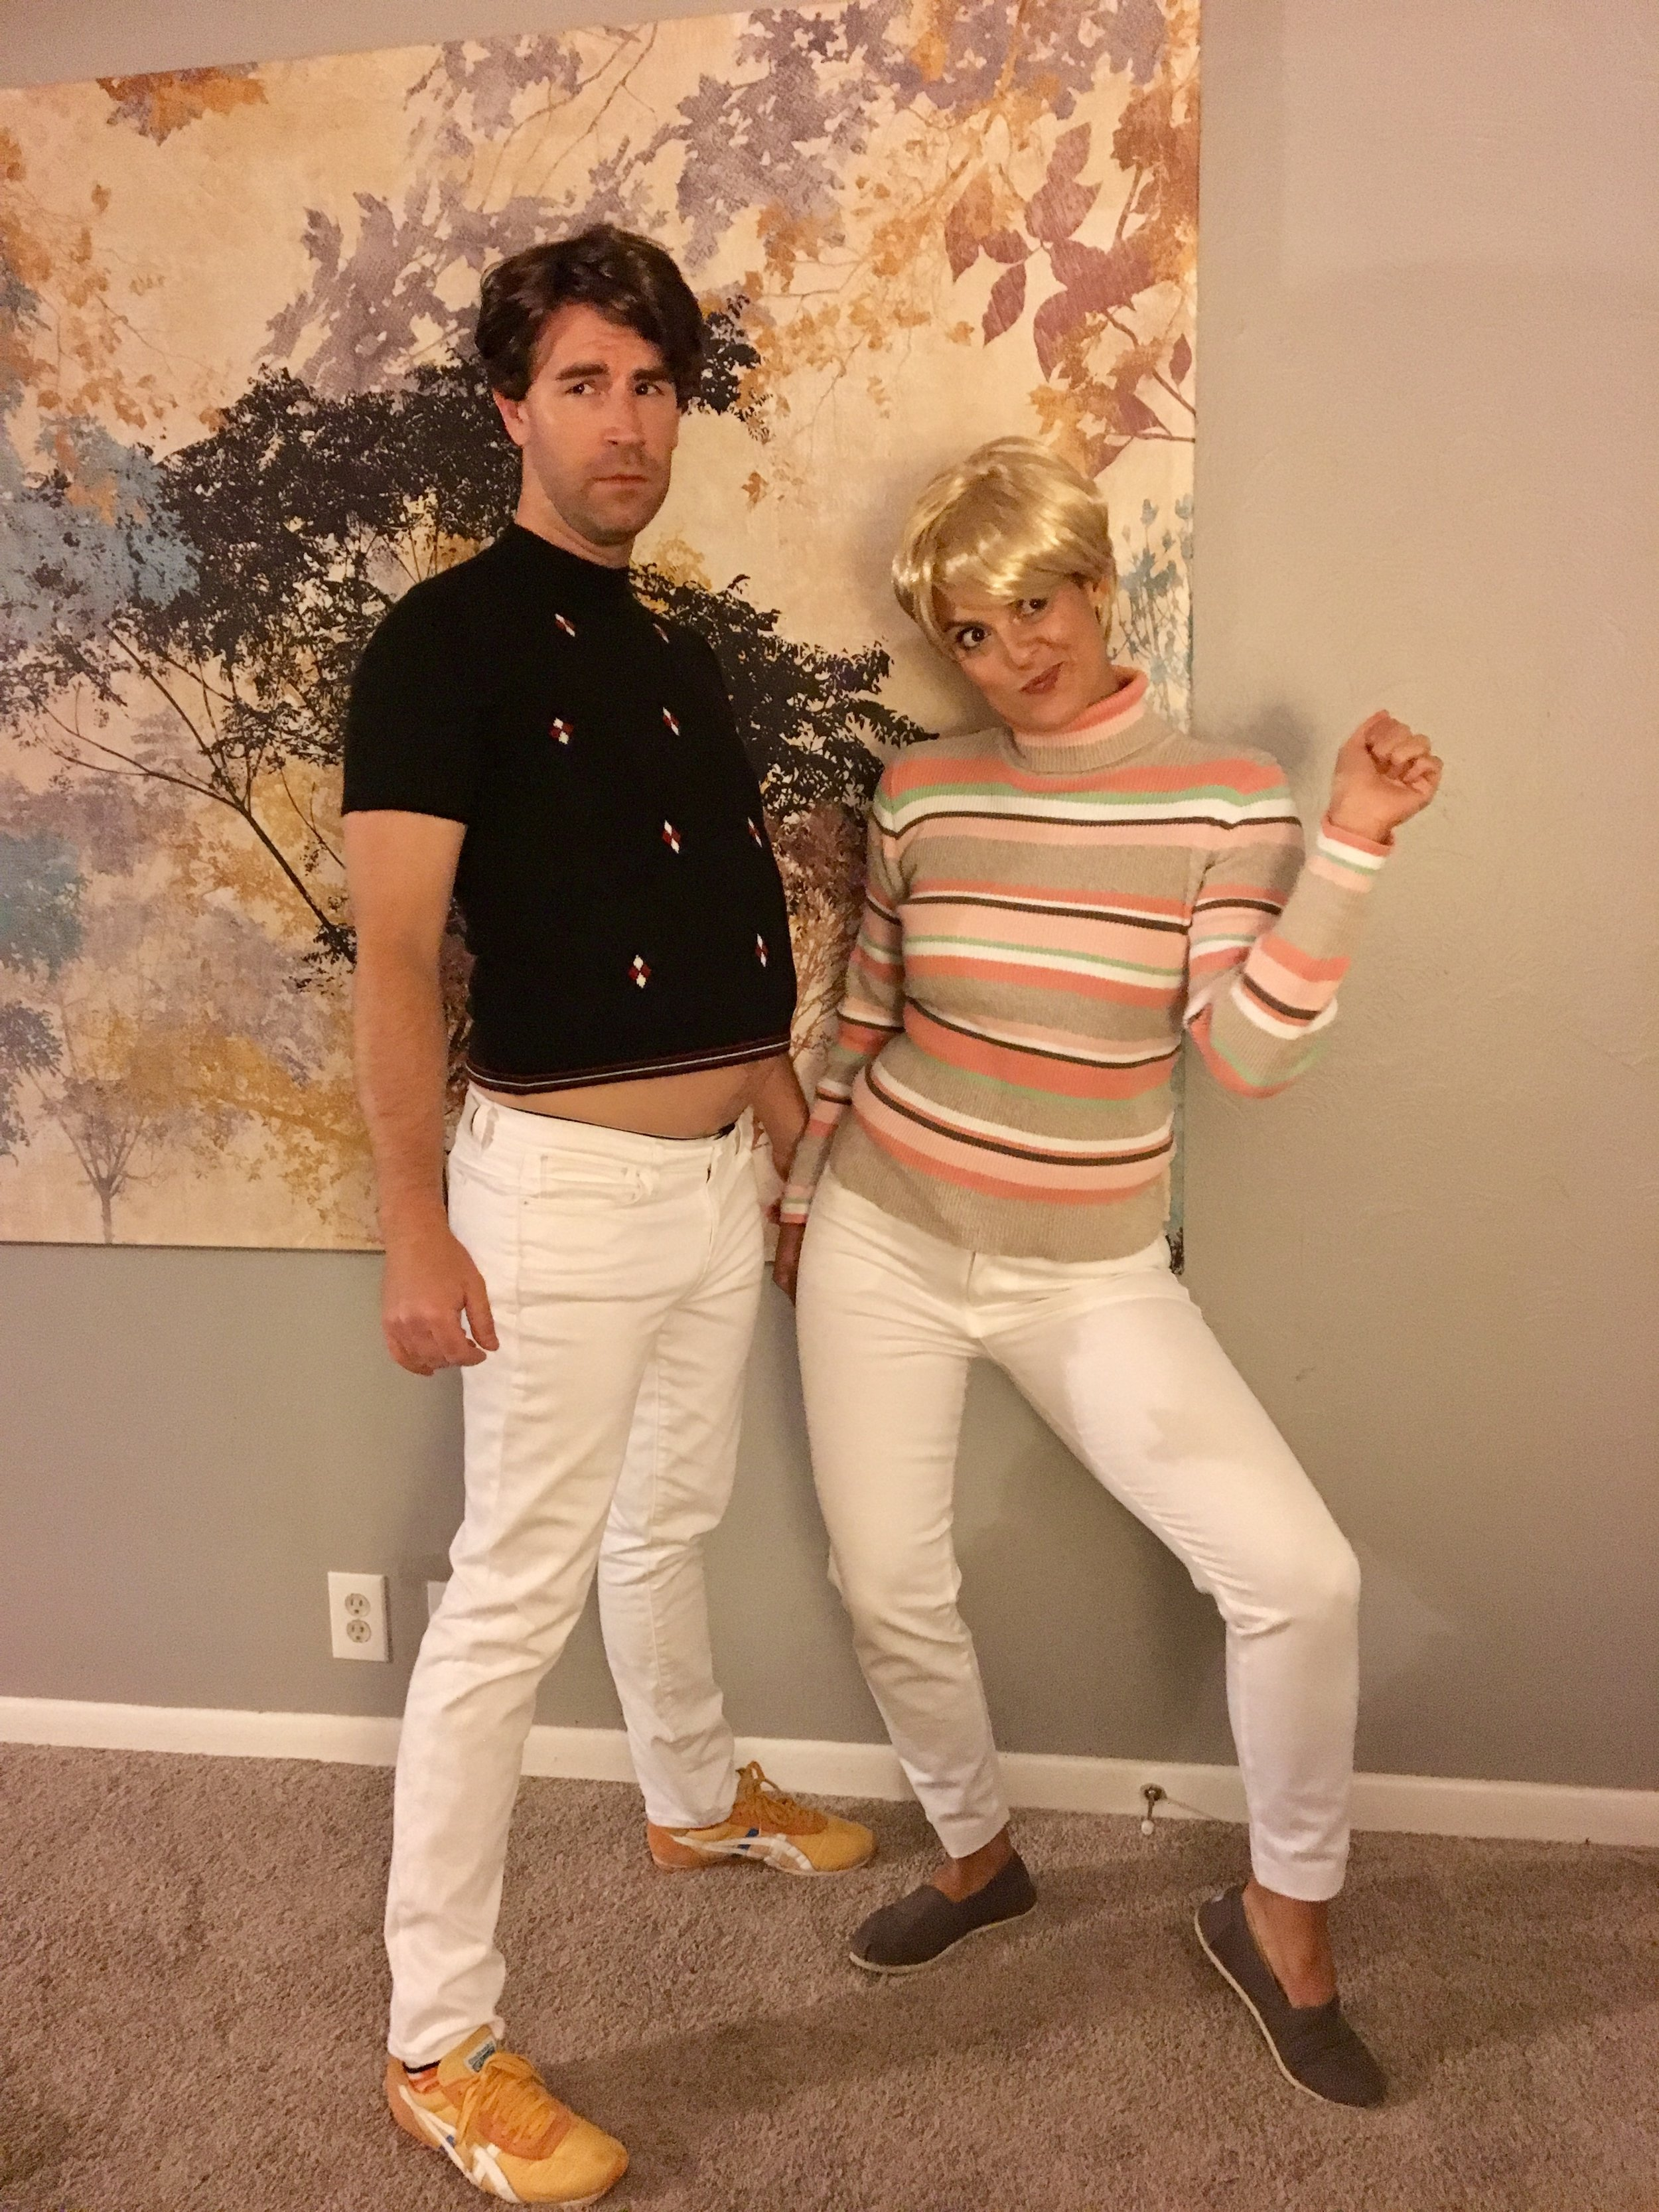 Why? Because tight pants.